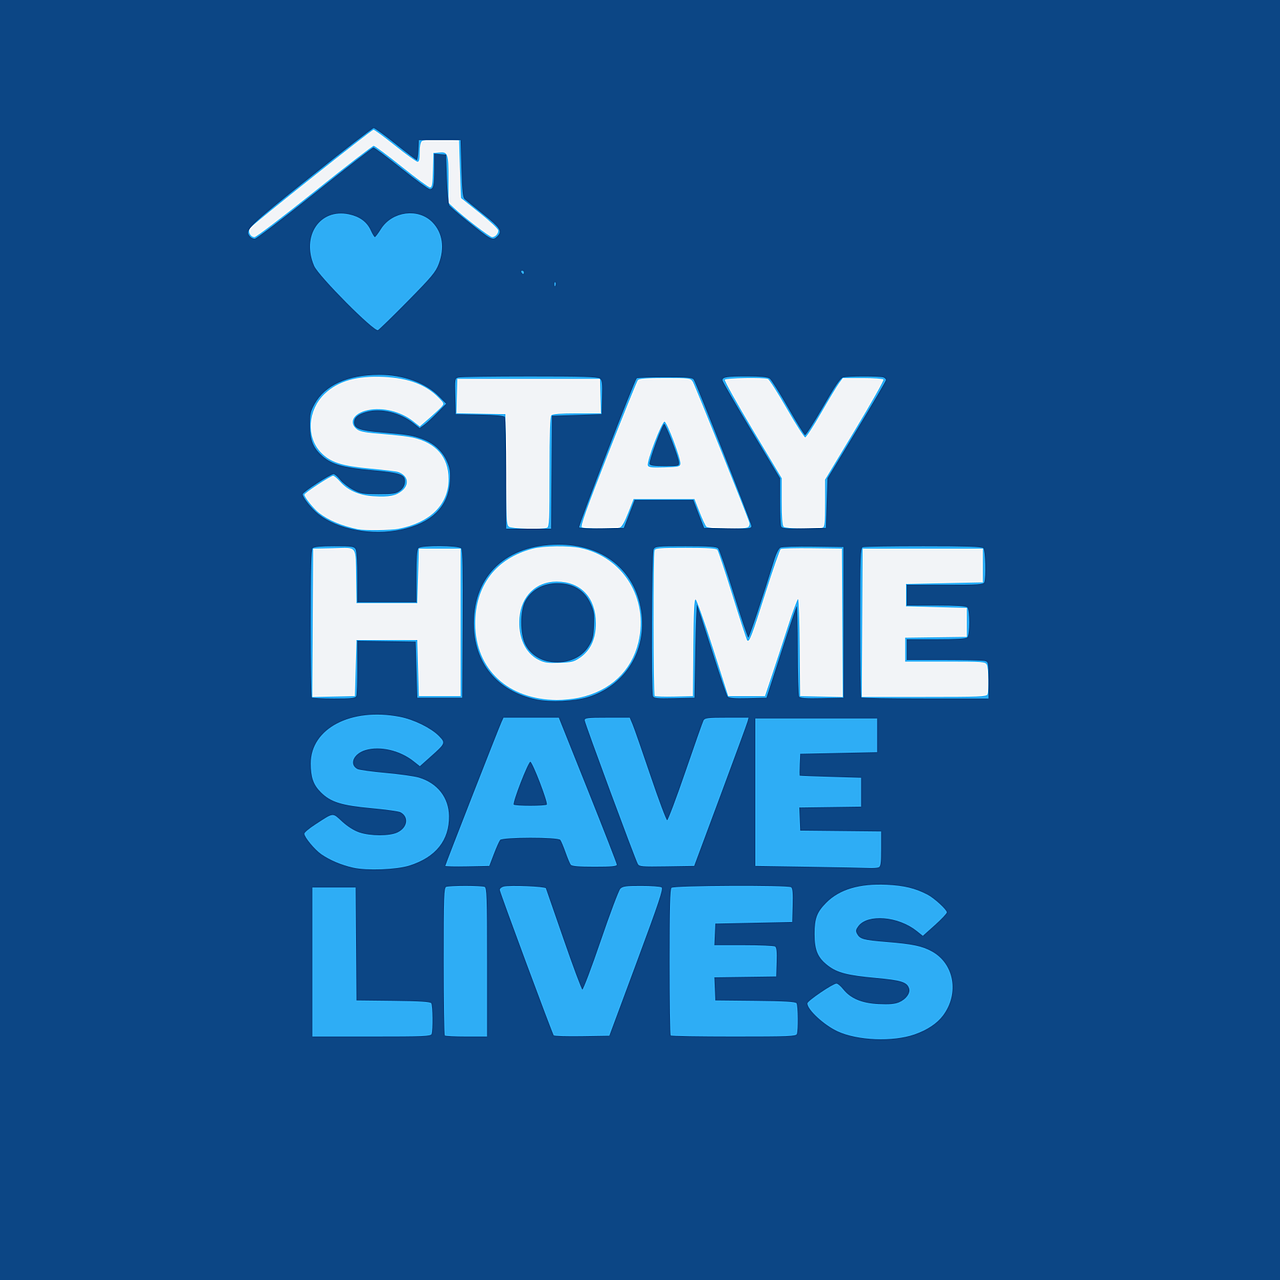 stay home save lives 4983843 1280